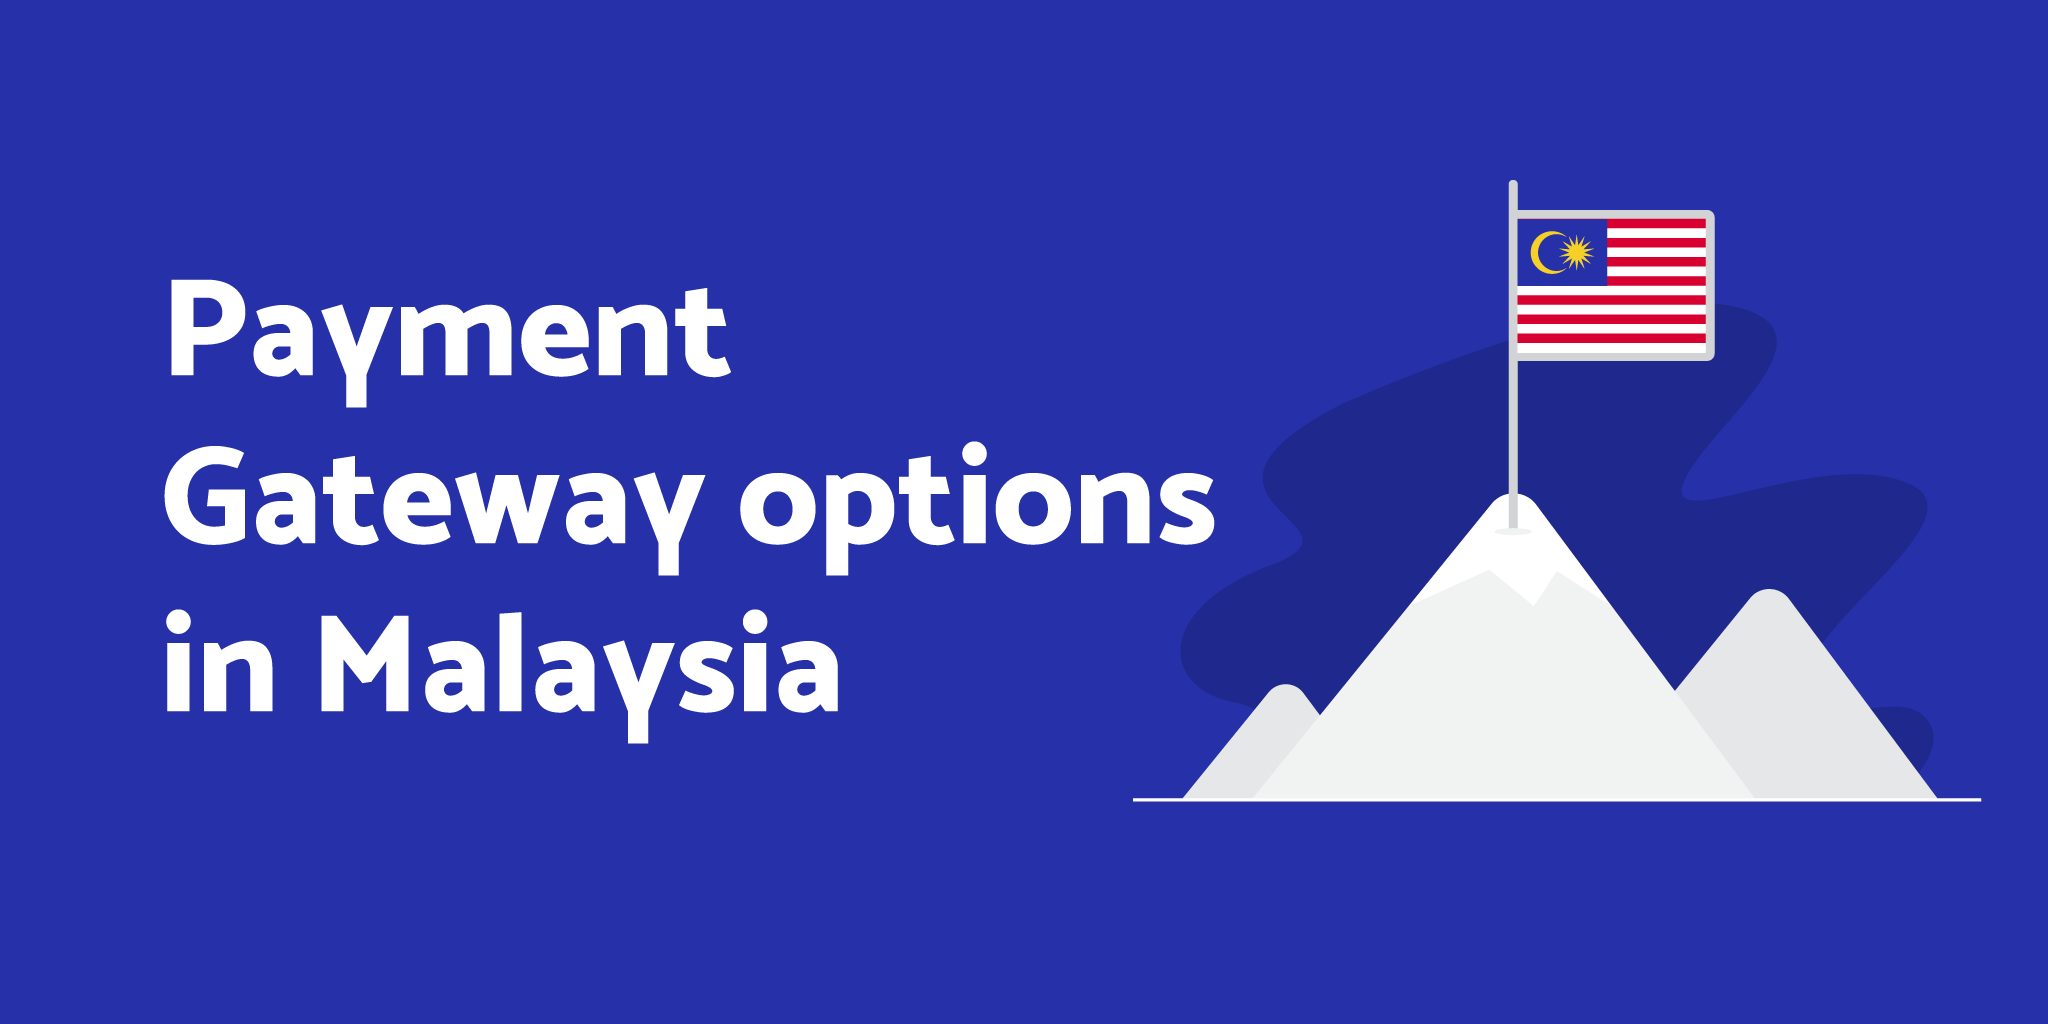 Payment gateway integration options for start-ups in Malaysia